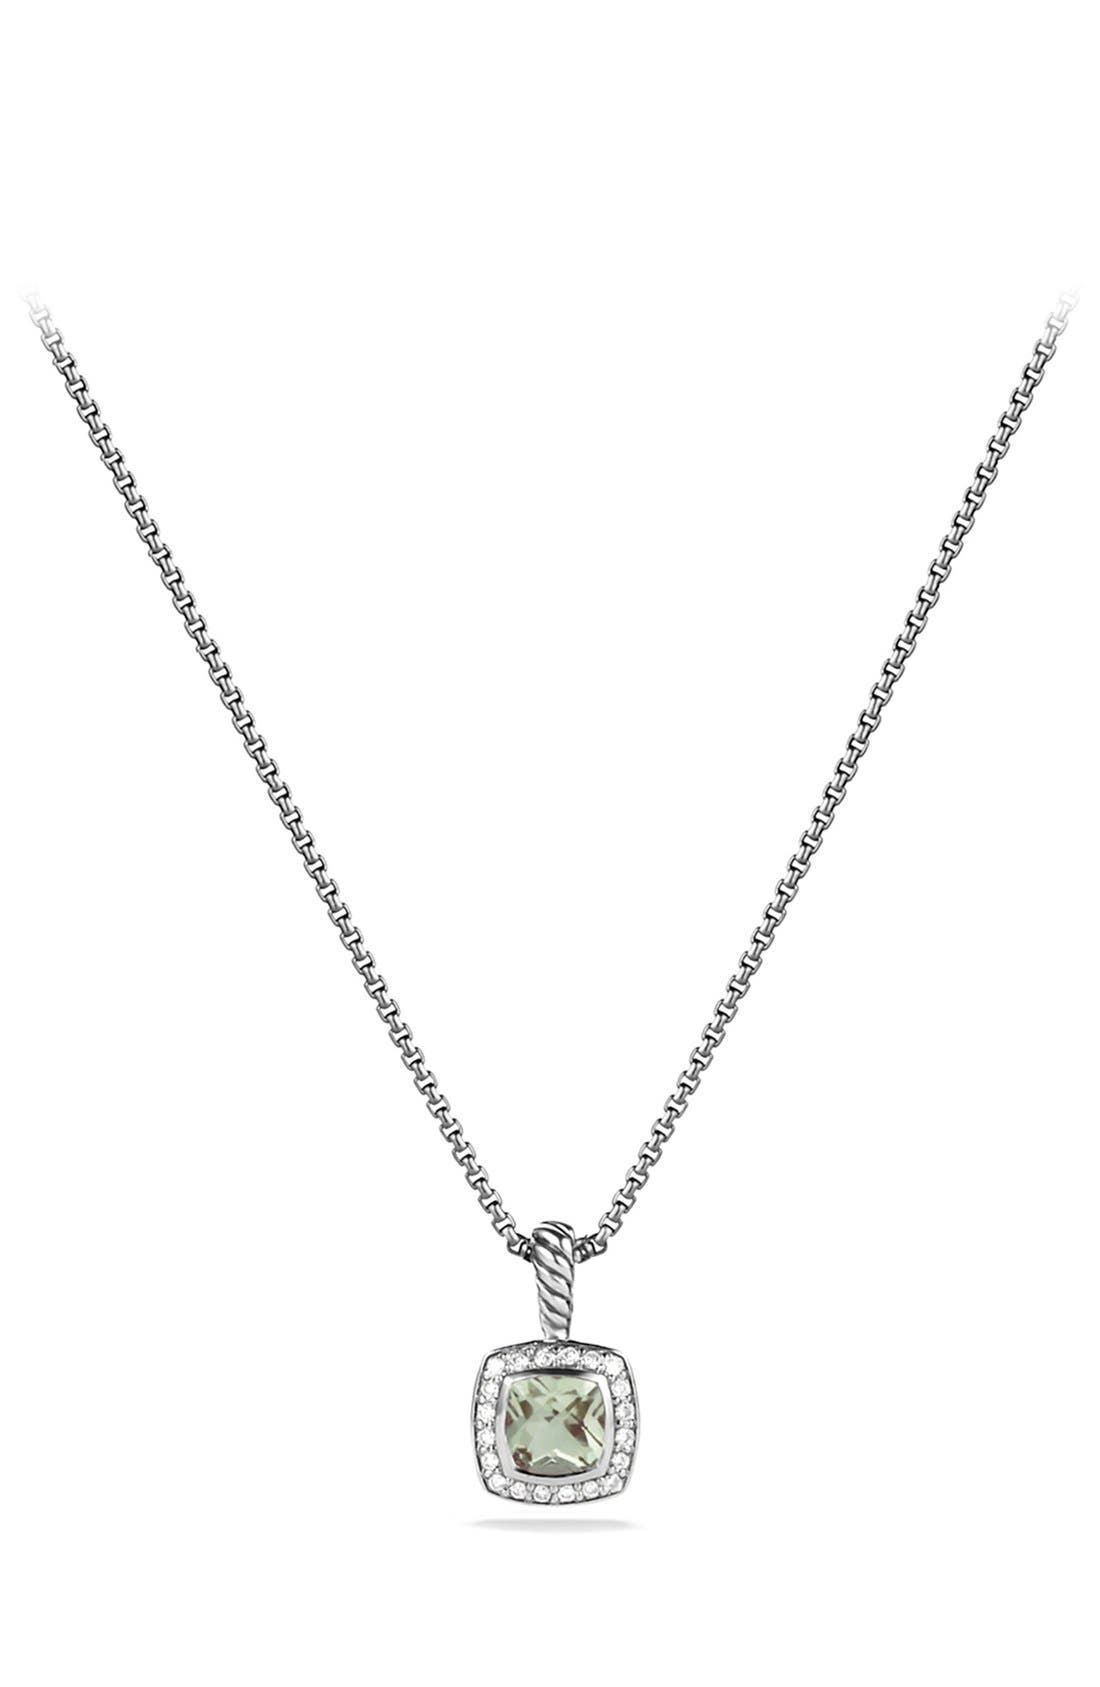 David Yurman 'Albion' Petite Pendant with Prasiolite and Diamonds on Chain